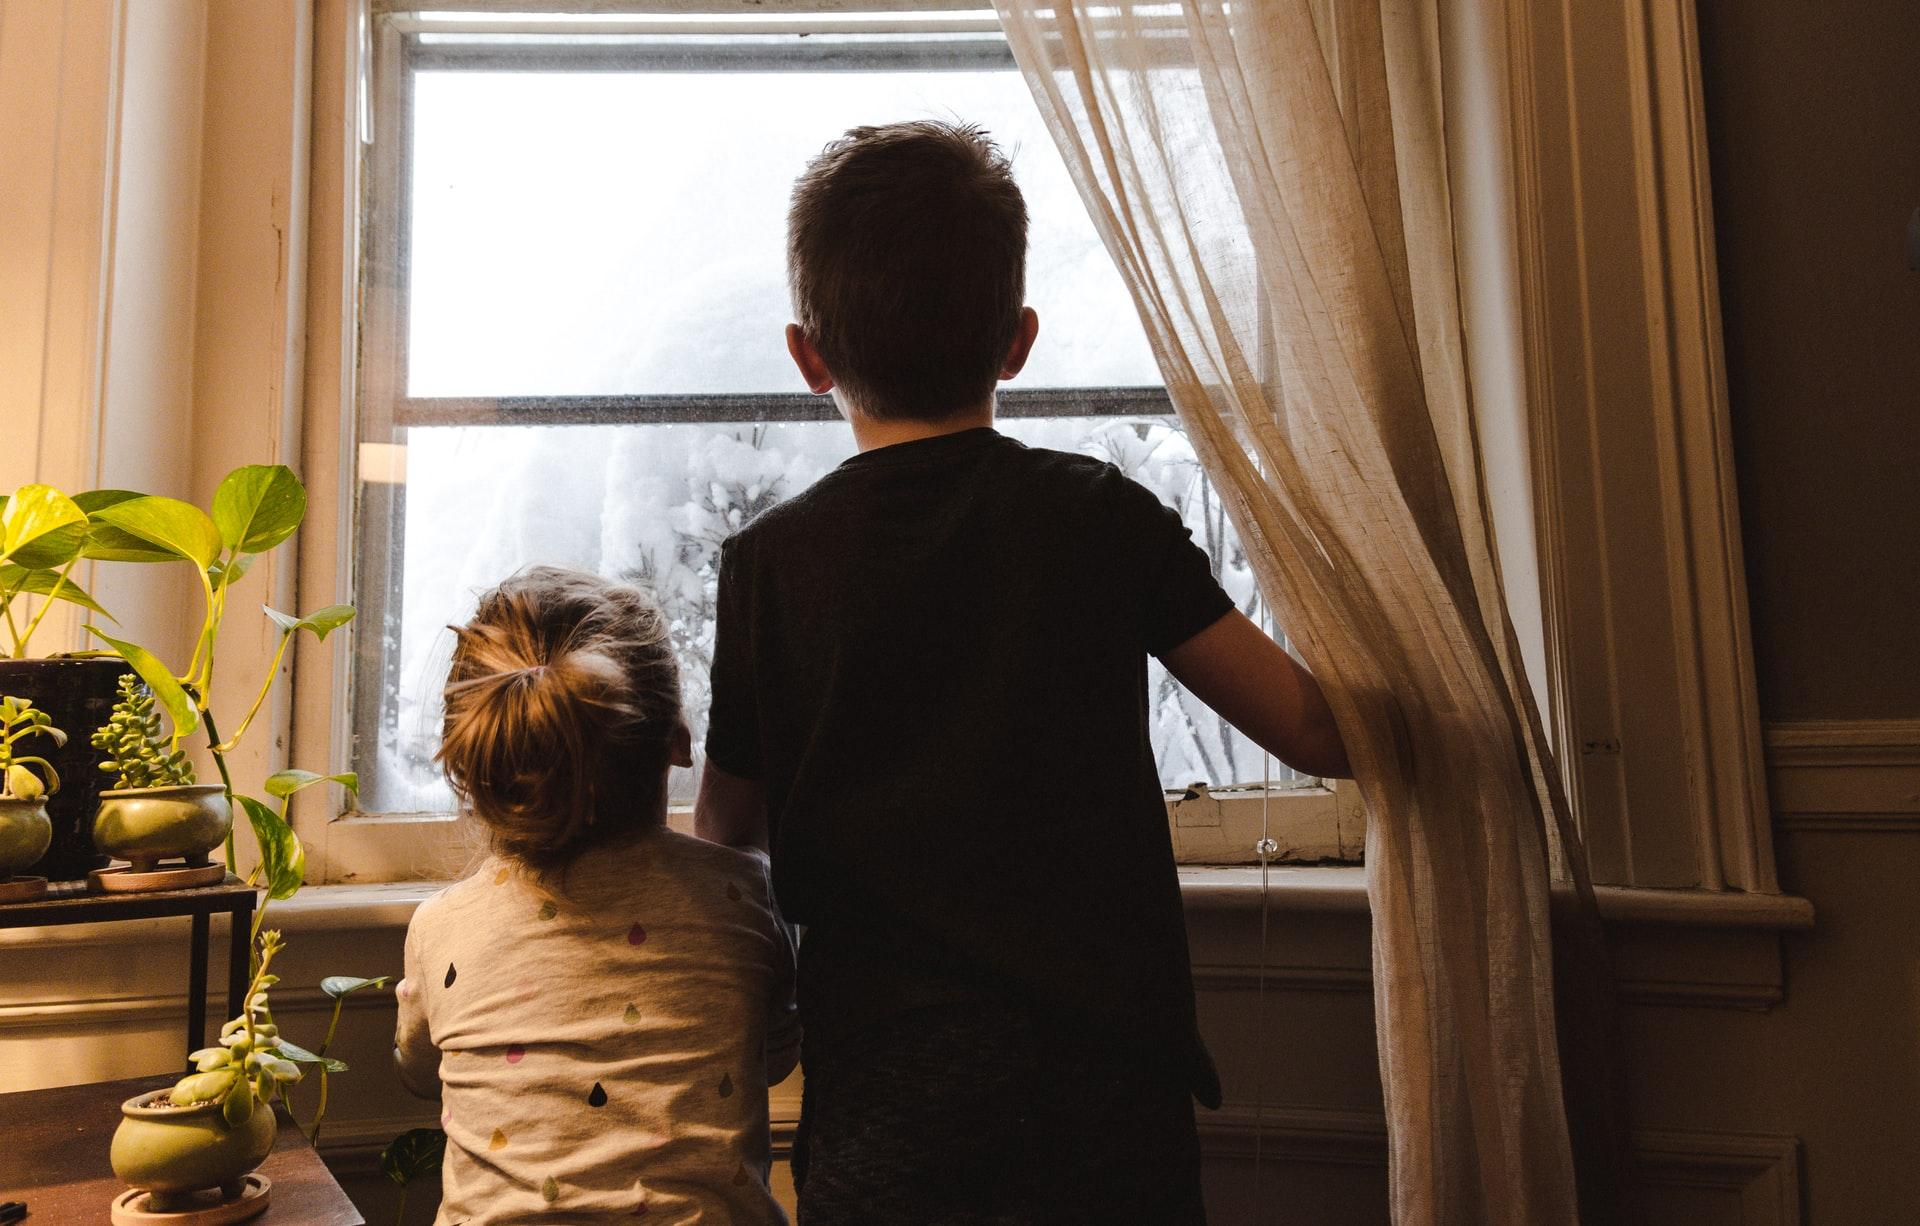 coronavirus stay-at-home orders may be taking a toll on your kids